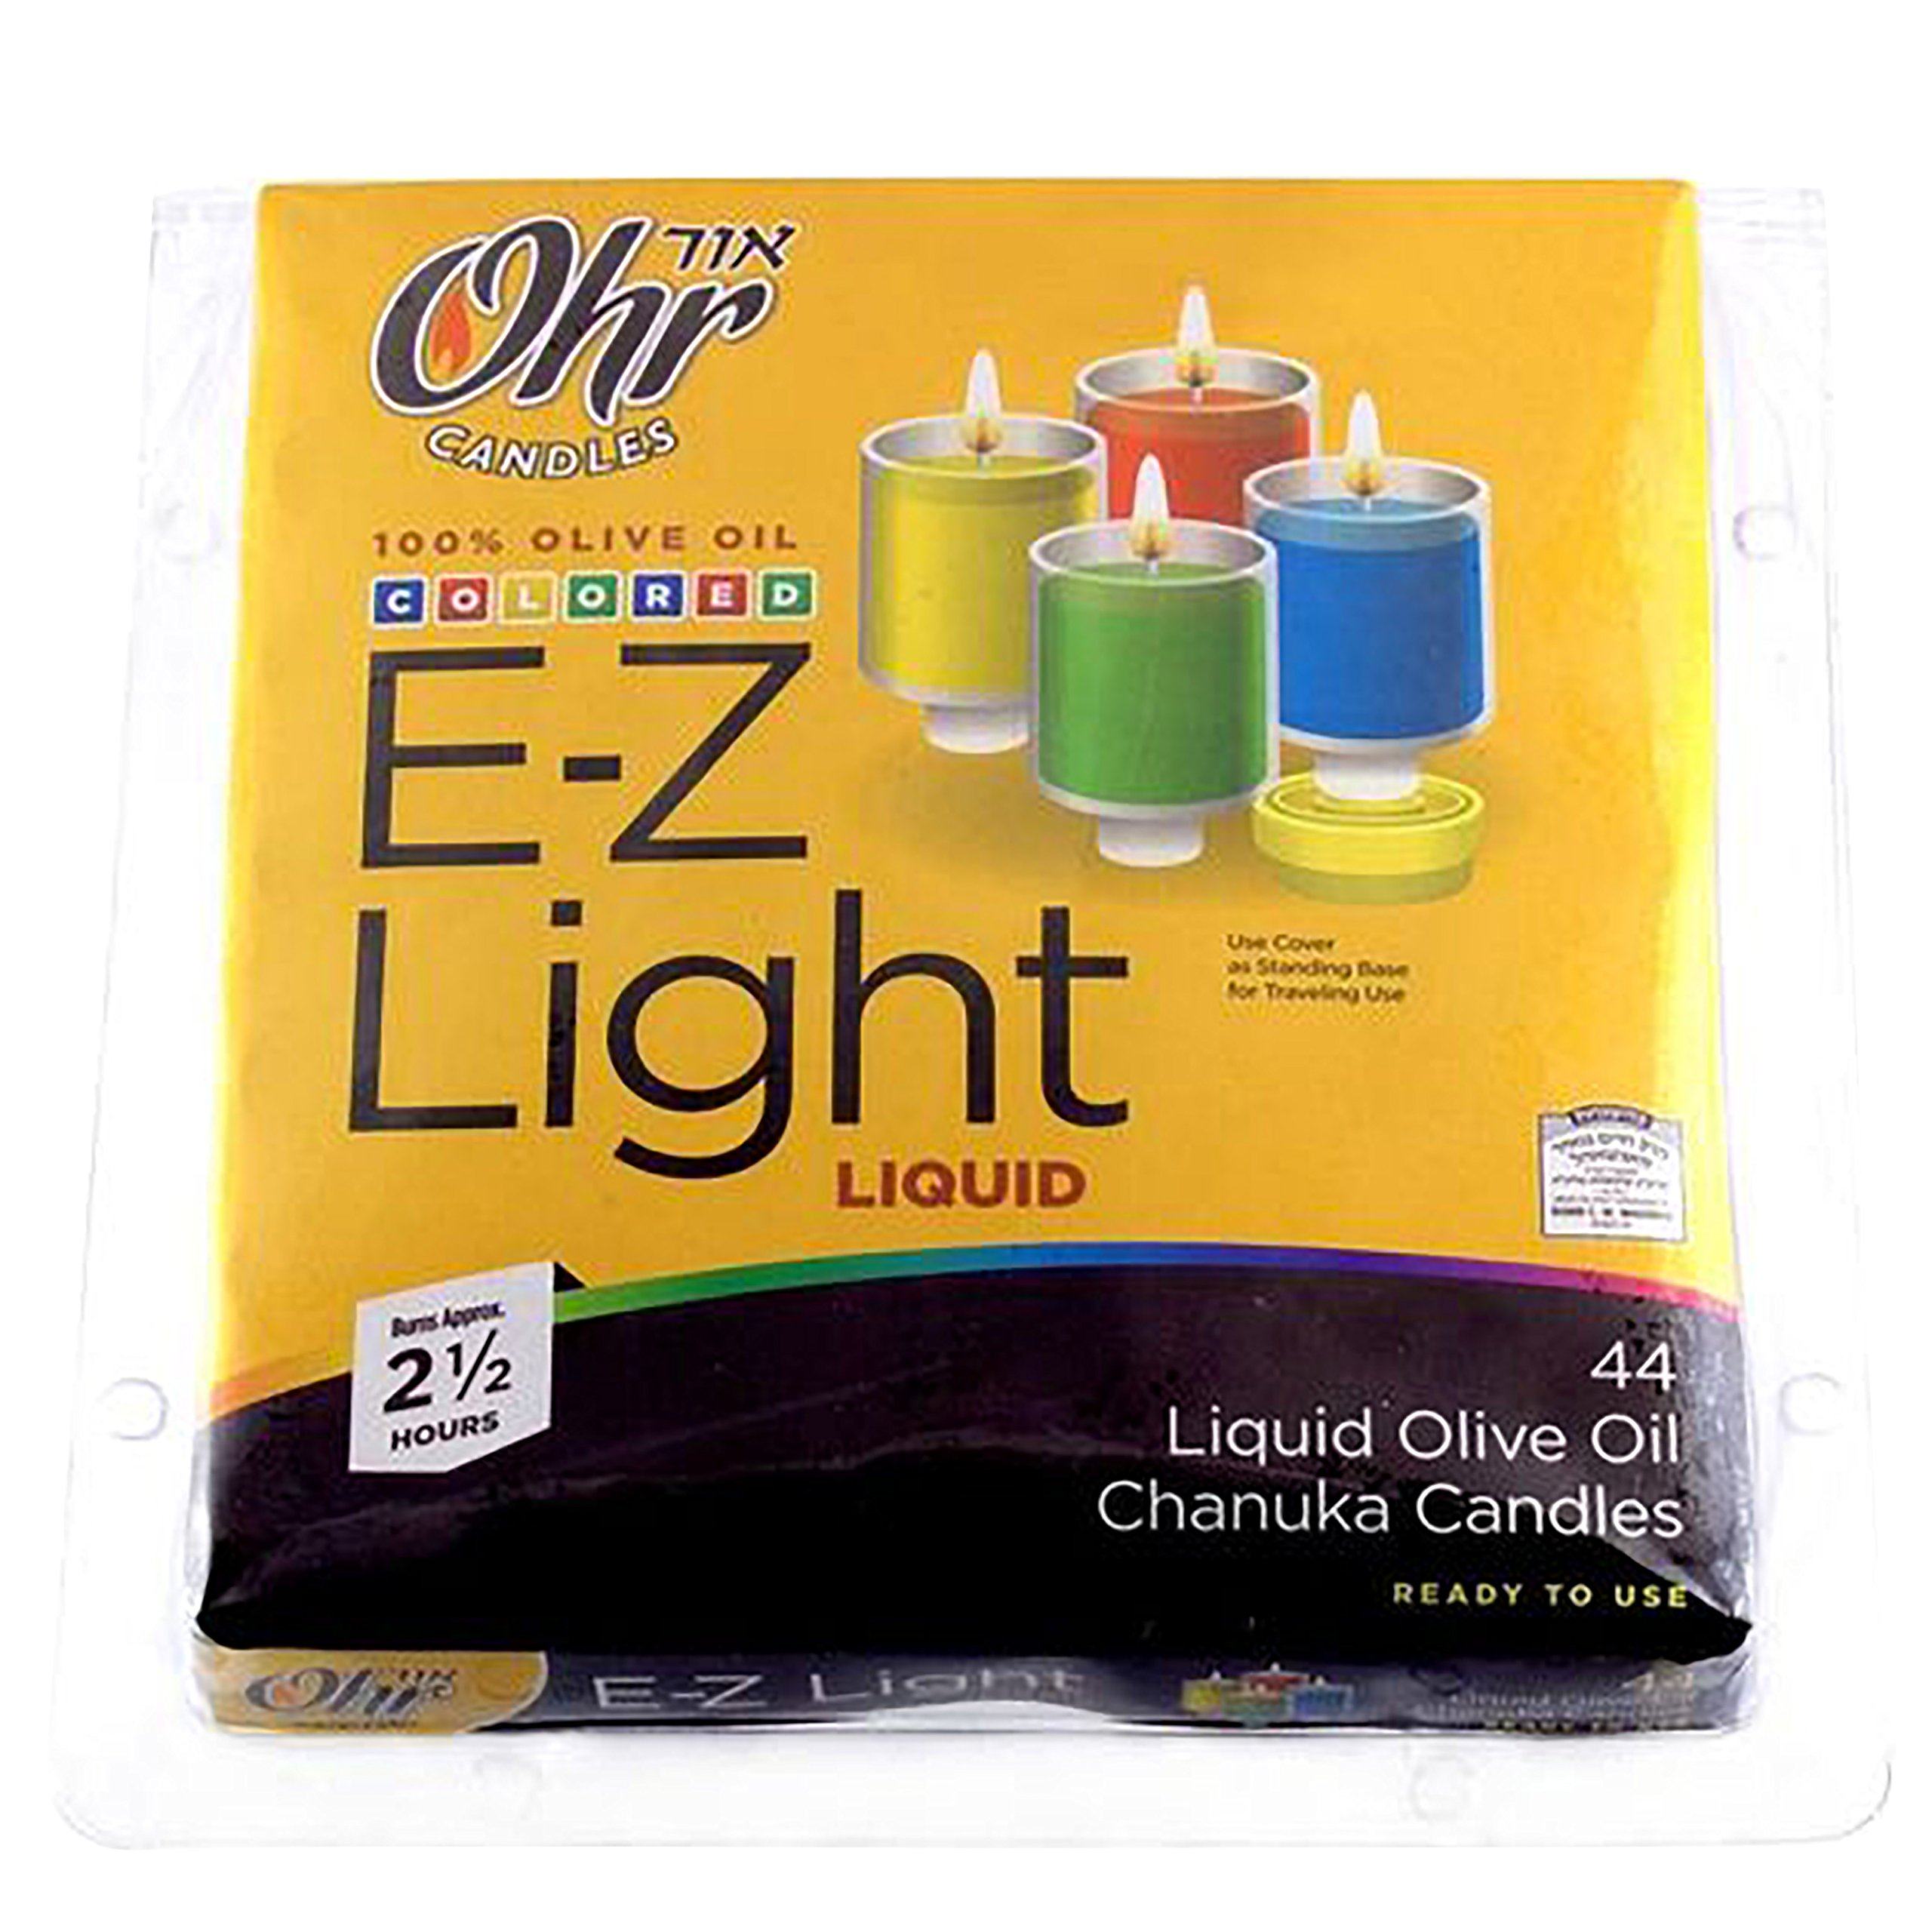 Pre-Filled Colored Menorah Oil Cup Candles - Hanukkah EZ Lights - 100% Olive Oil with Cotton Wick in Plastic Cup - Medium Size, 44 per Pack, Burns Approx. 2 1/2 Hrs